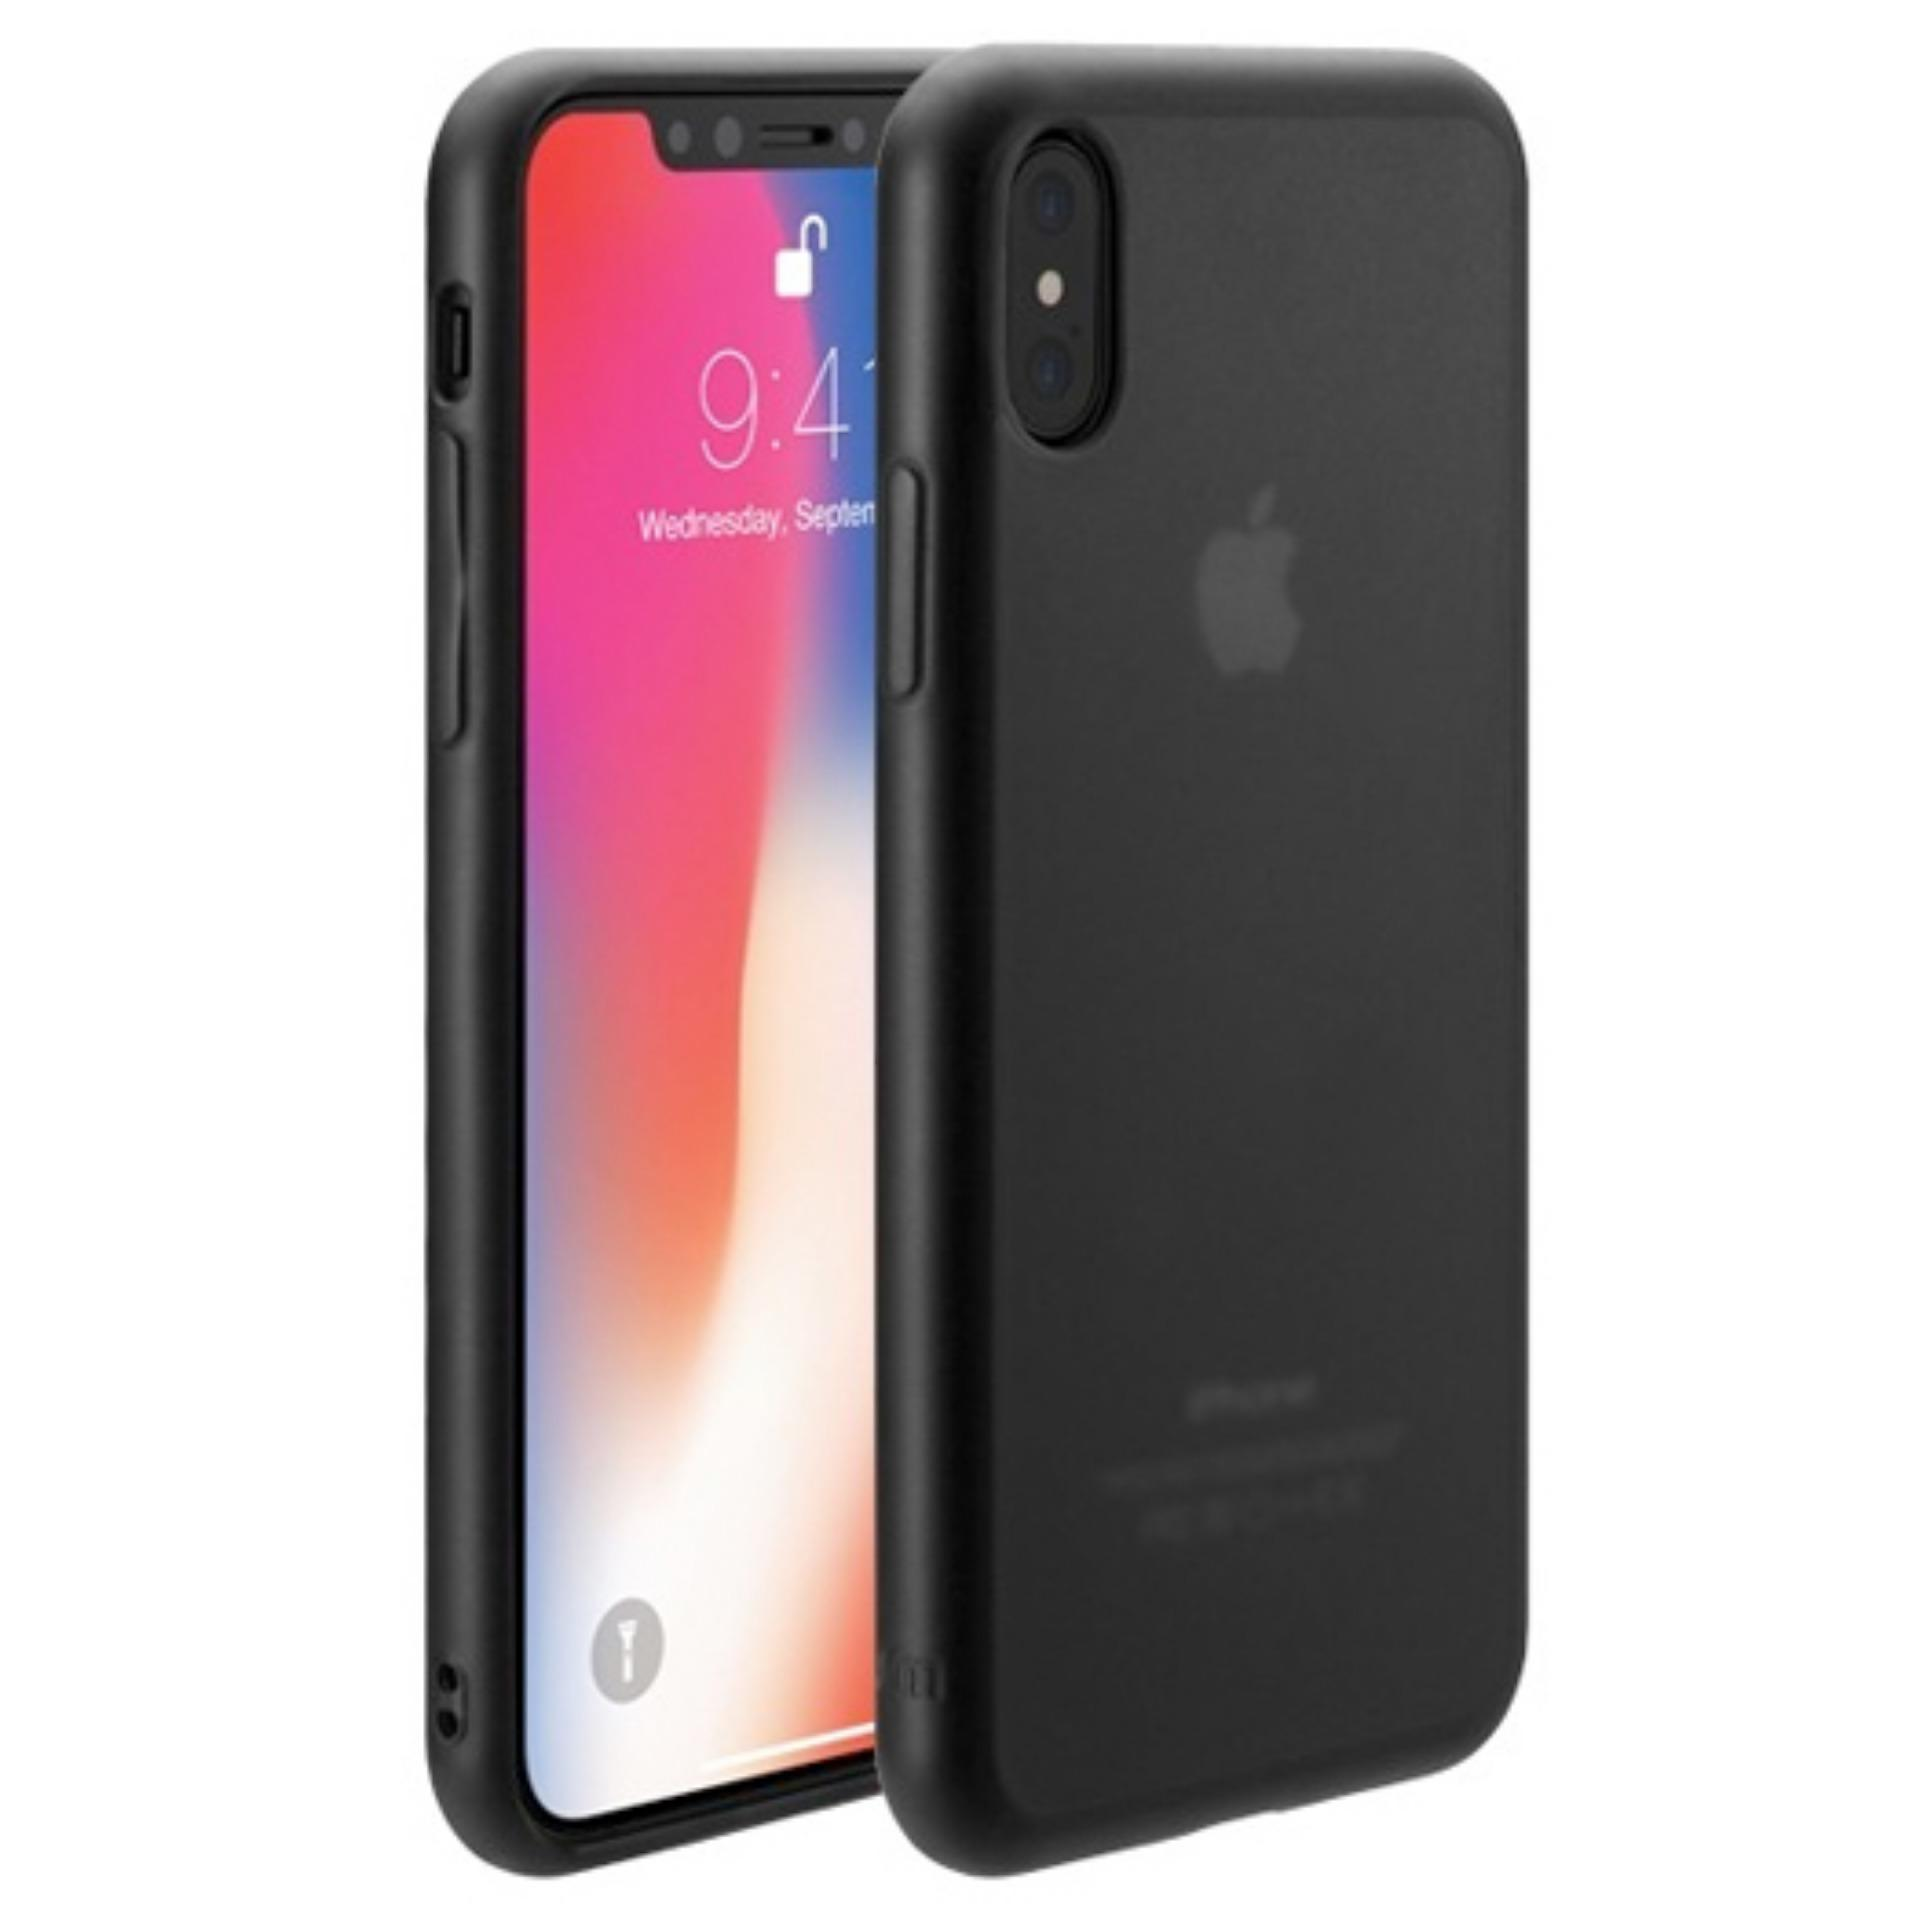 Case Slim Black Matte iPhone X Baby Skin Softcase Ultra Thin Jelly Silikon Babyskin  - Black